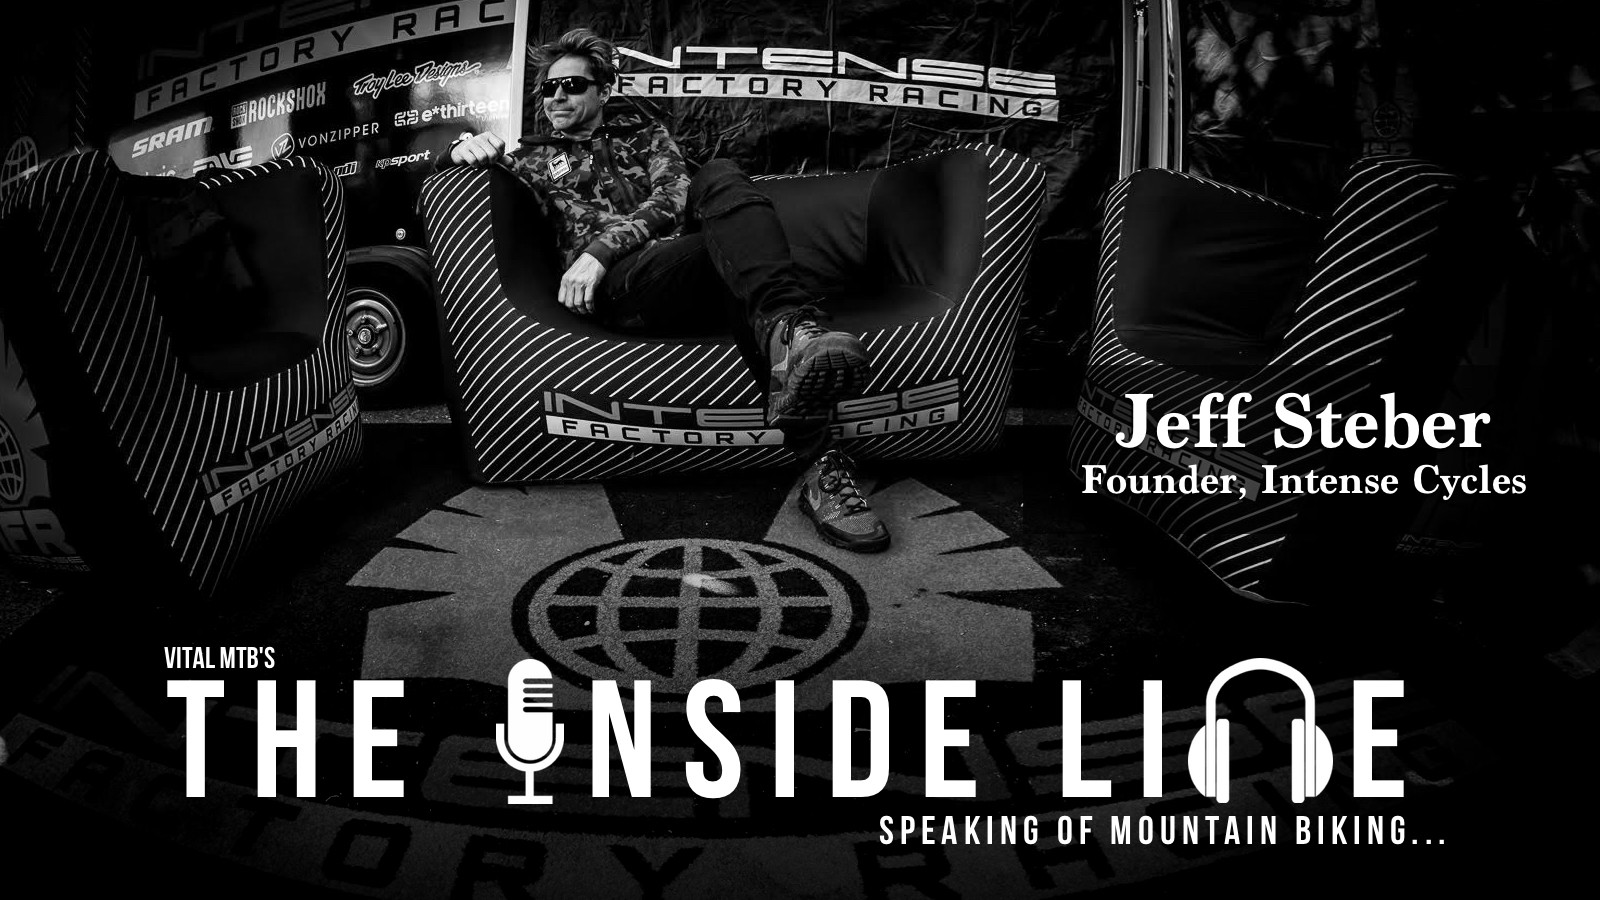 The Inside Line Podcast - Jeff Steber, Founder of Intense Cycles